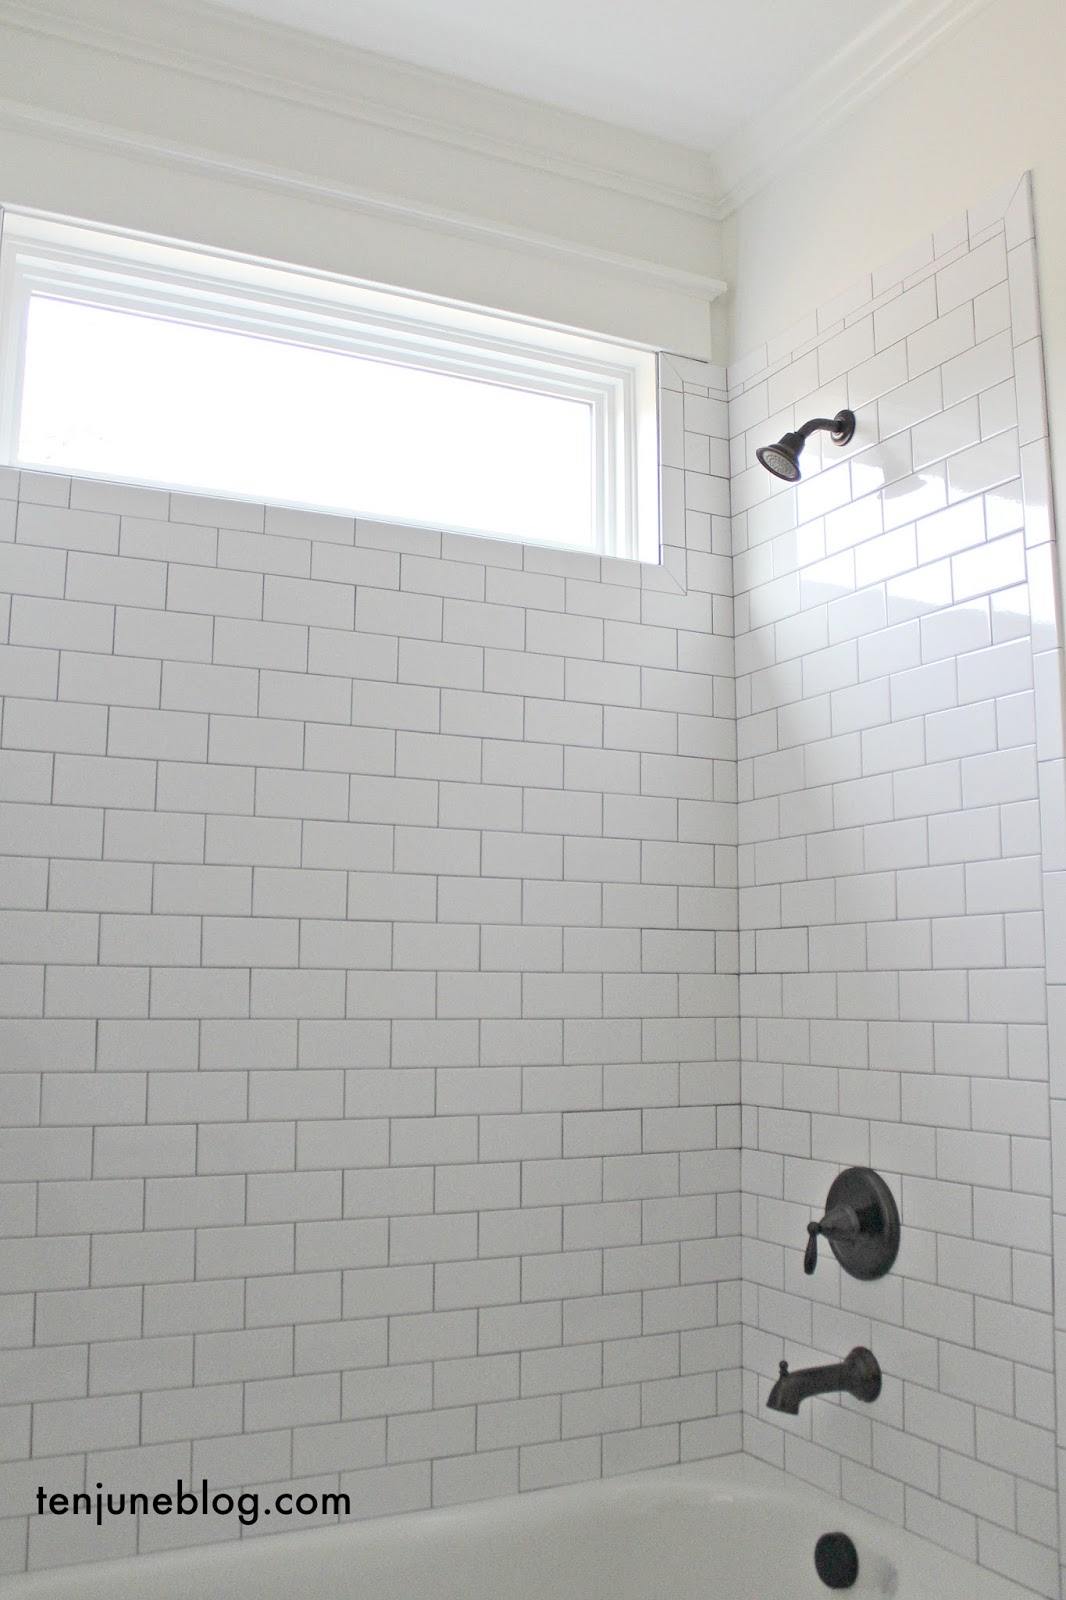 Ten june building our farmhouse tile grout sources guest bath floor grout bright white guest bathroom shower wall tile guest bath wall grout delorean gray dailygadgetfo Images